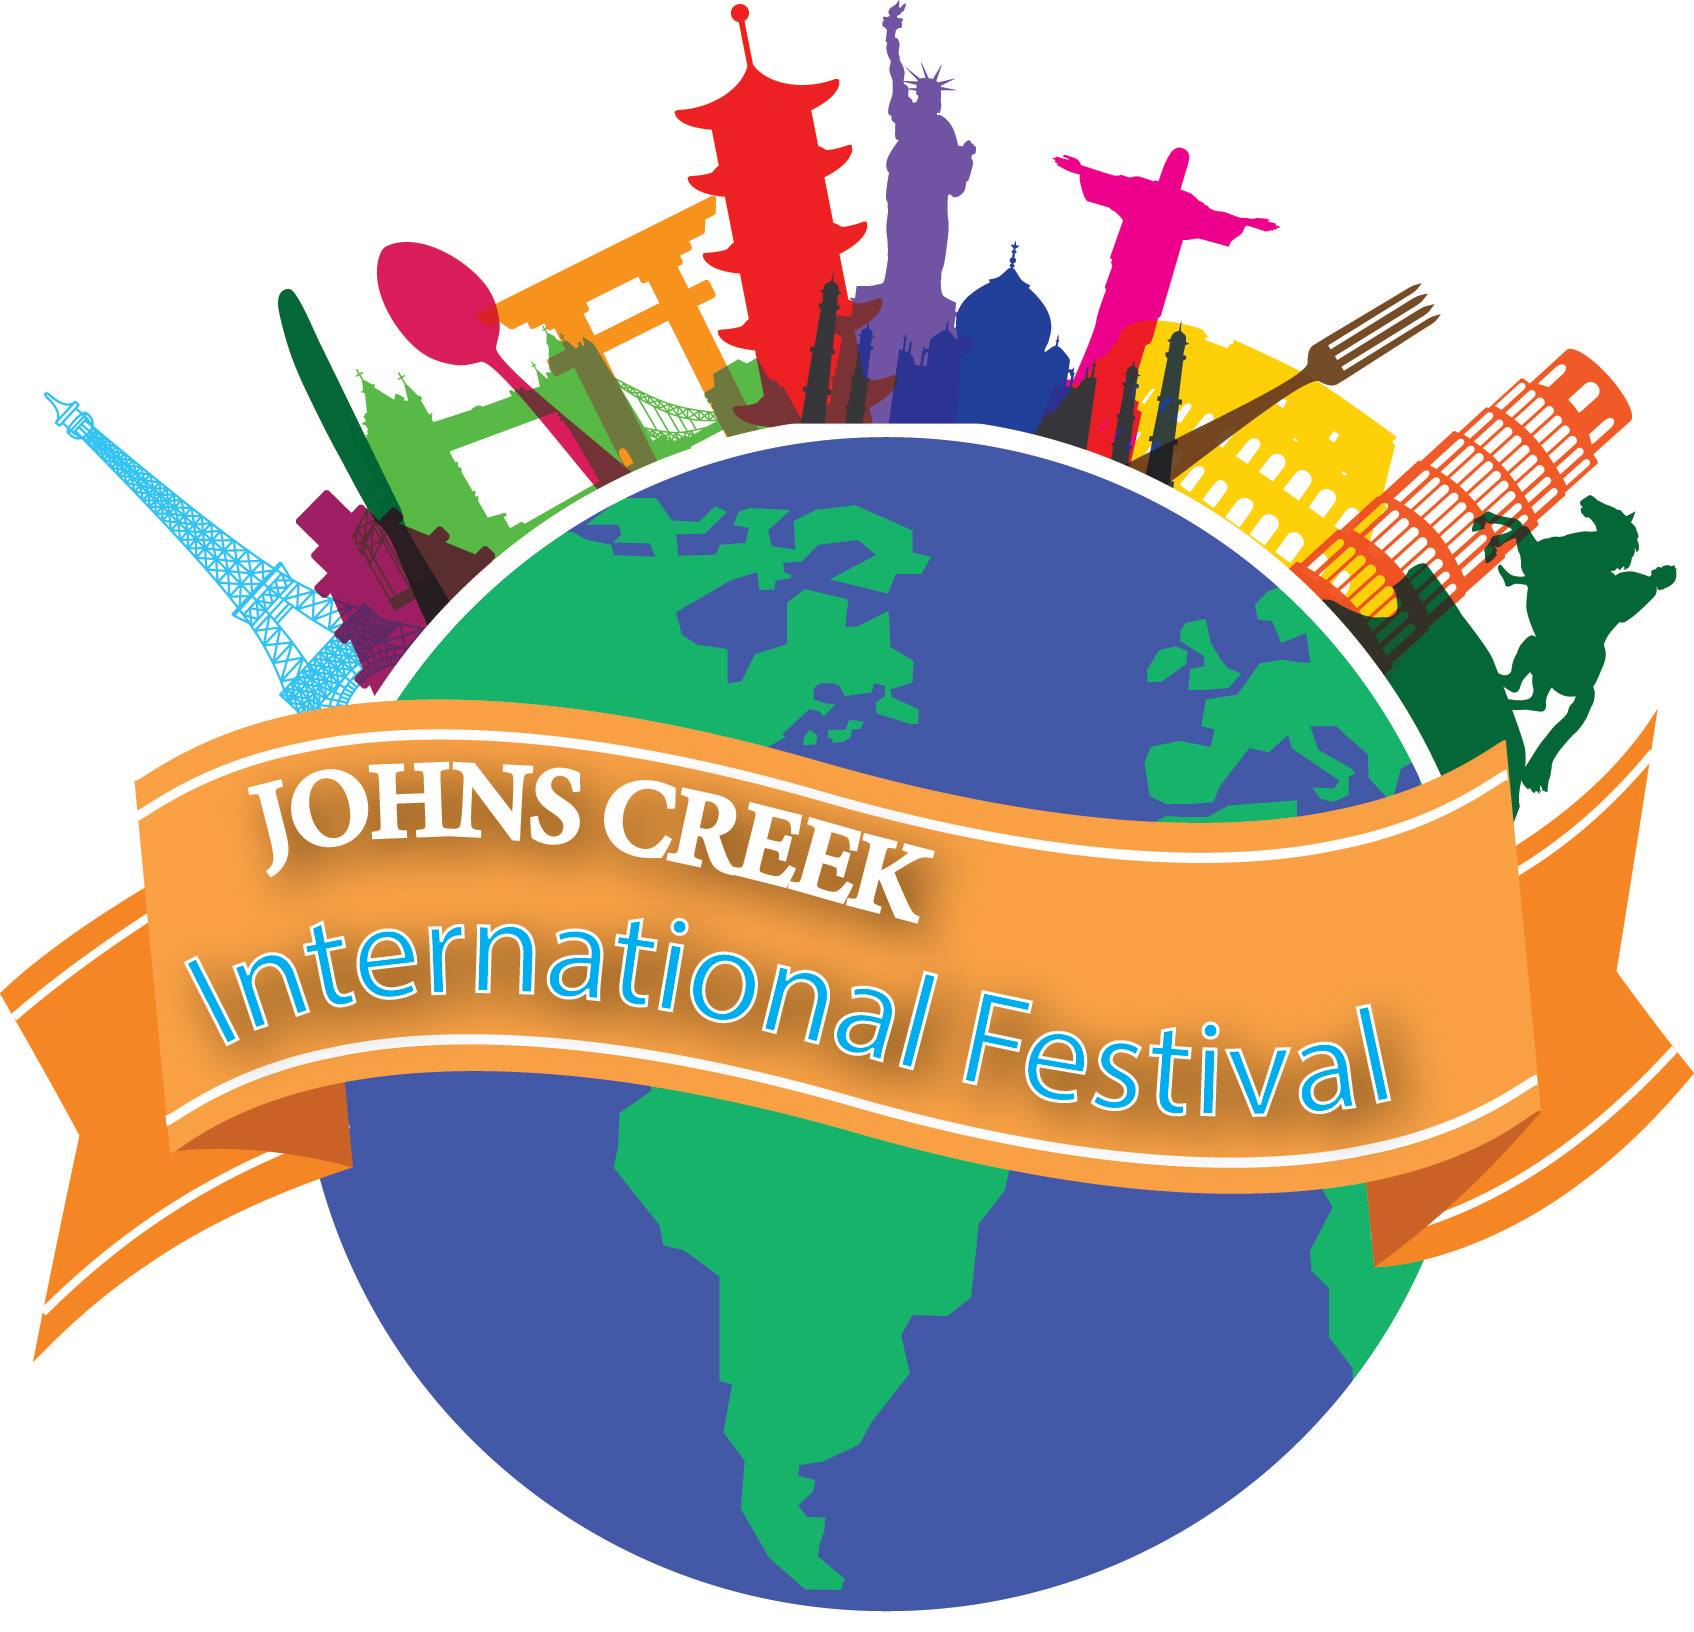 Sponsorship, vendor, & performance opportunities are now open for the Johns Creek International Festival